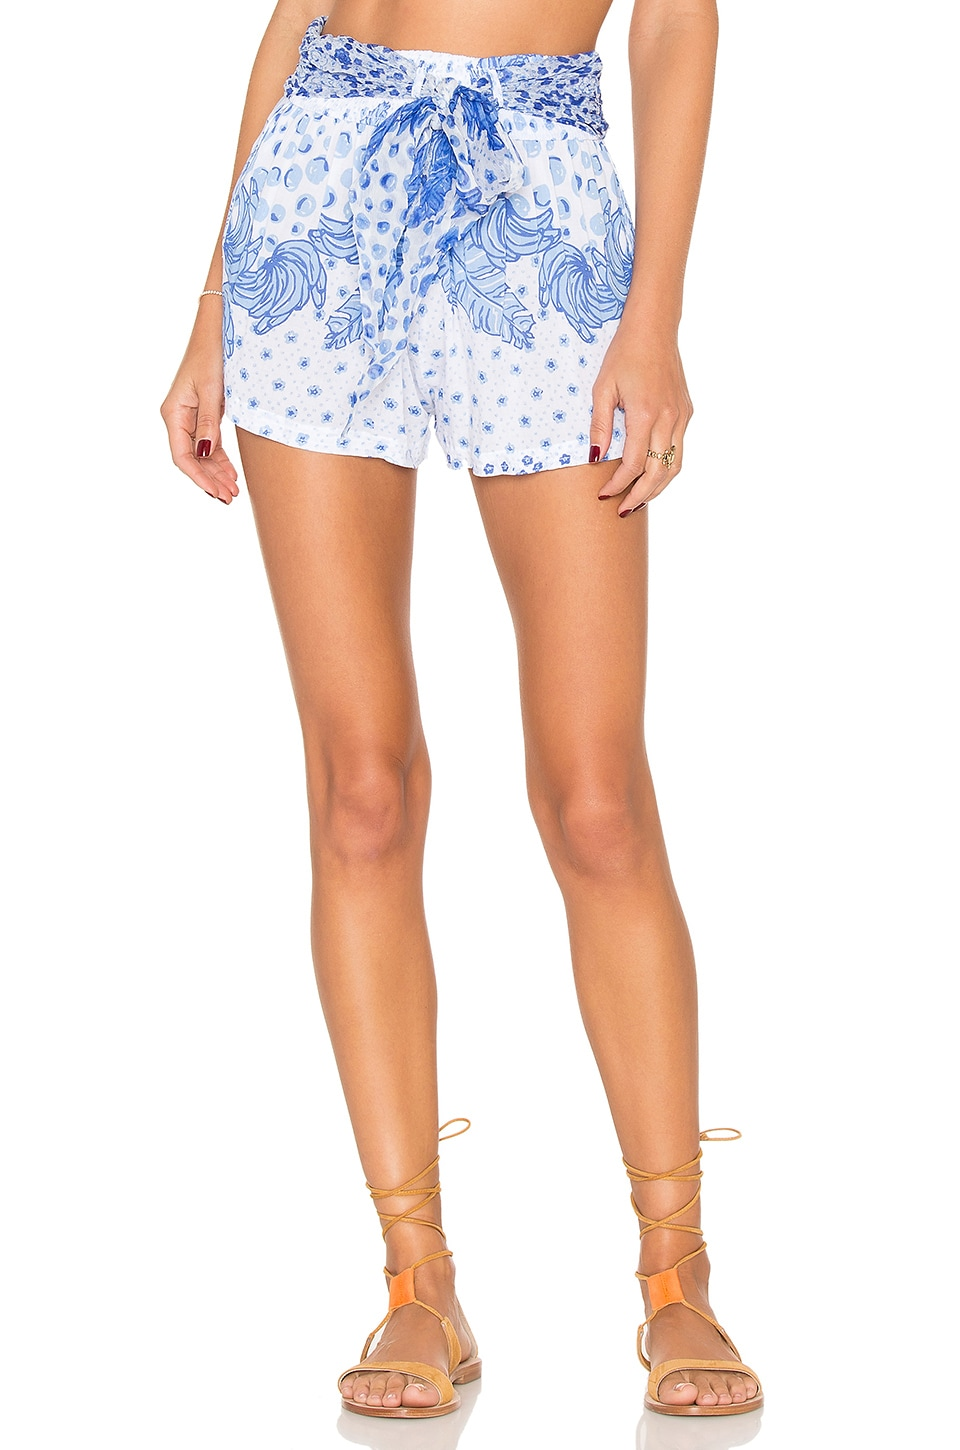 Coco Short by Poupette St Barth